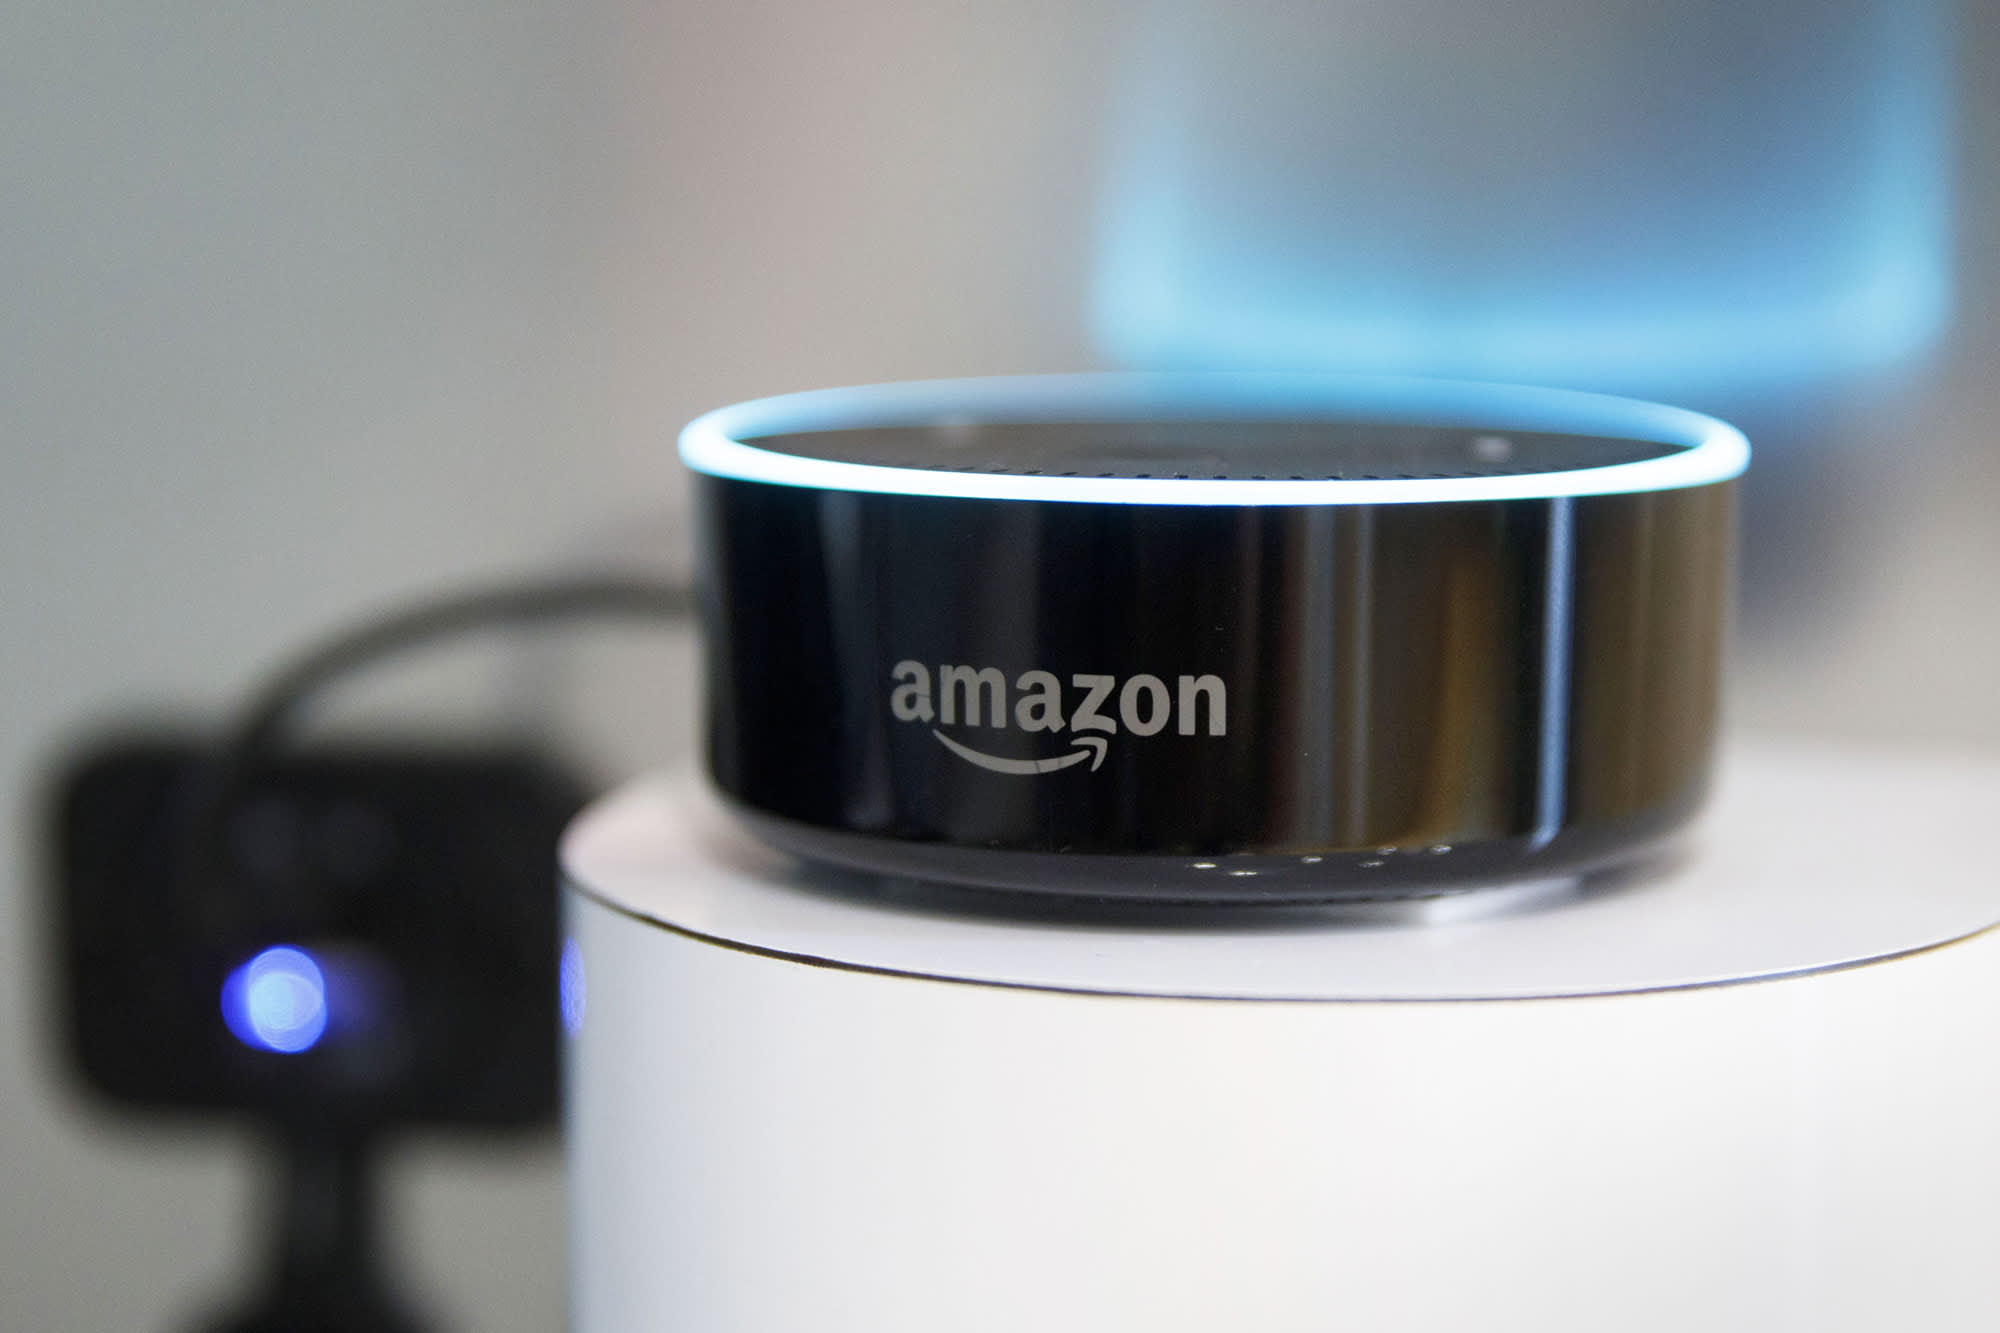 9 popular Amazon Alexa skills that will make you smarter, healthier and more productive